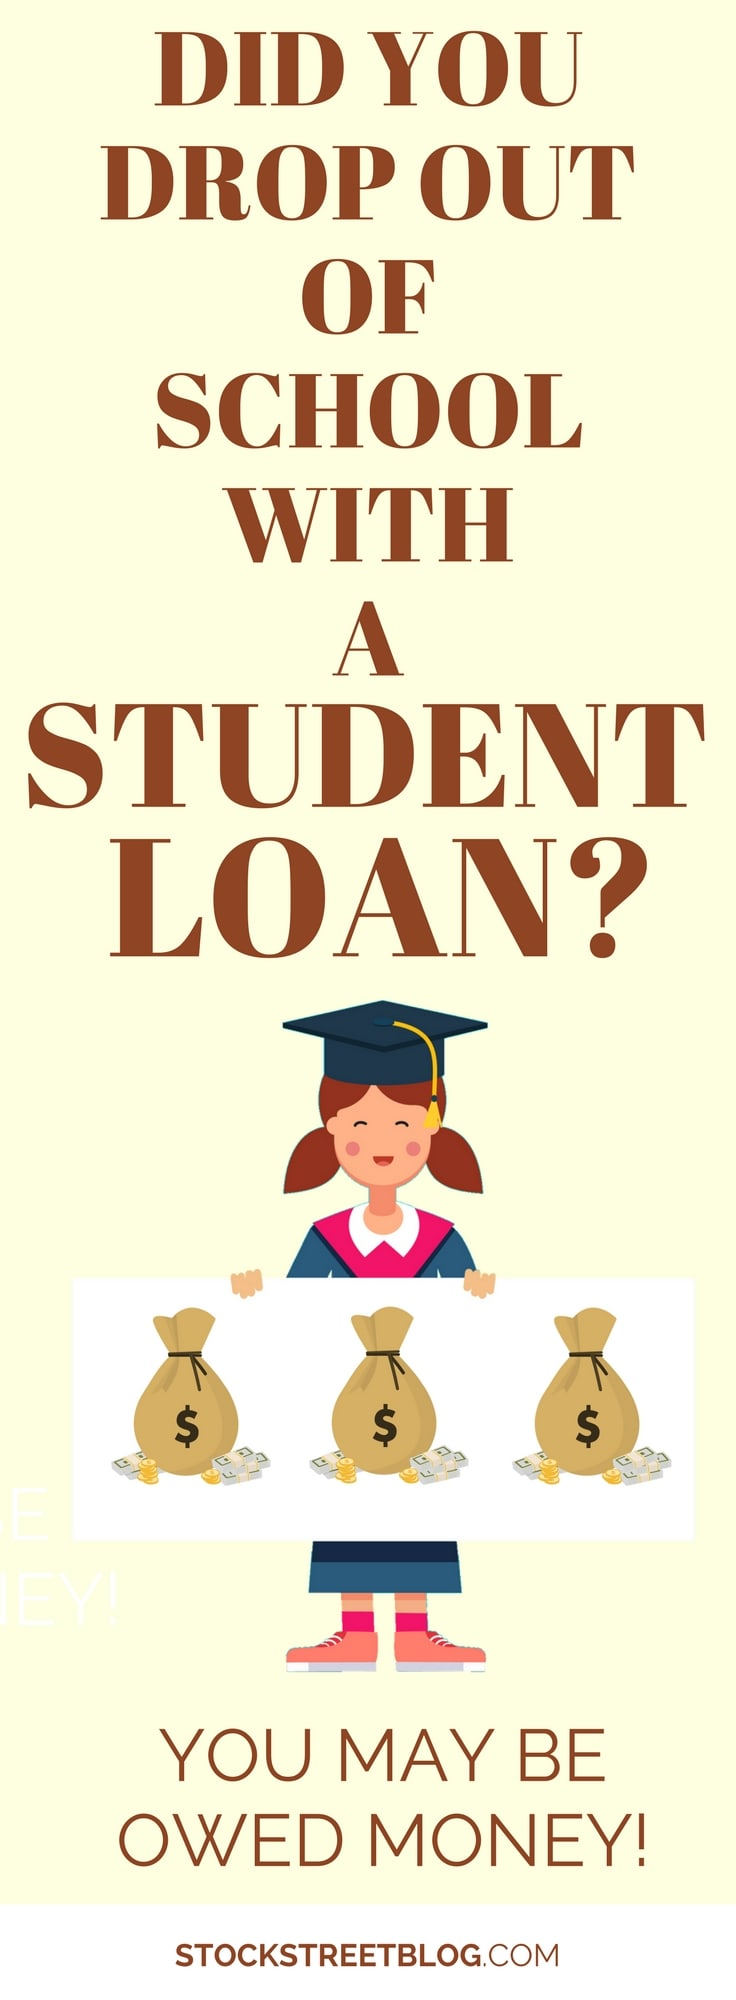 If you took out student loans for school but never graduated, you should have had a specific refund. If you did not receive that refund, you may be owed money! The great part is, the cash owed to you also will have earned interest over the years; you may be owed a nice chunk of money! #debt #debtsnowball #money #personalfinance #studentloans #financialfreedom